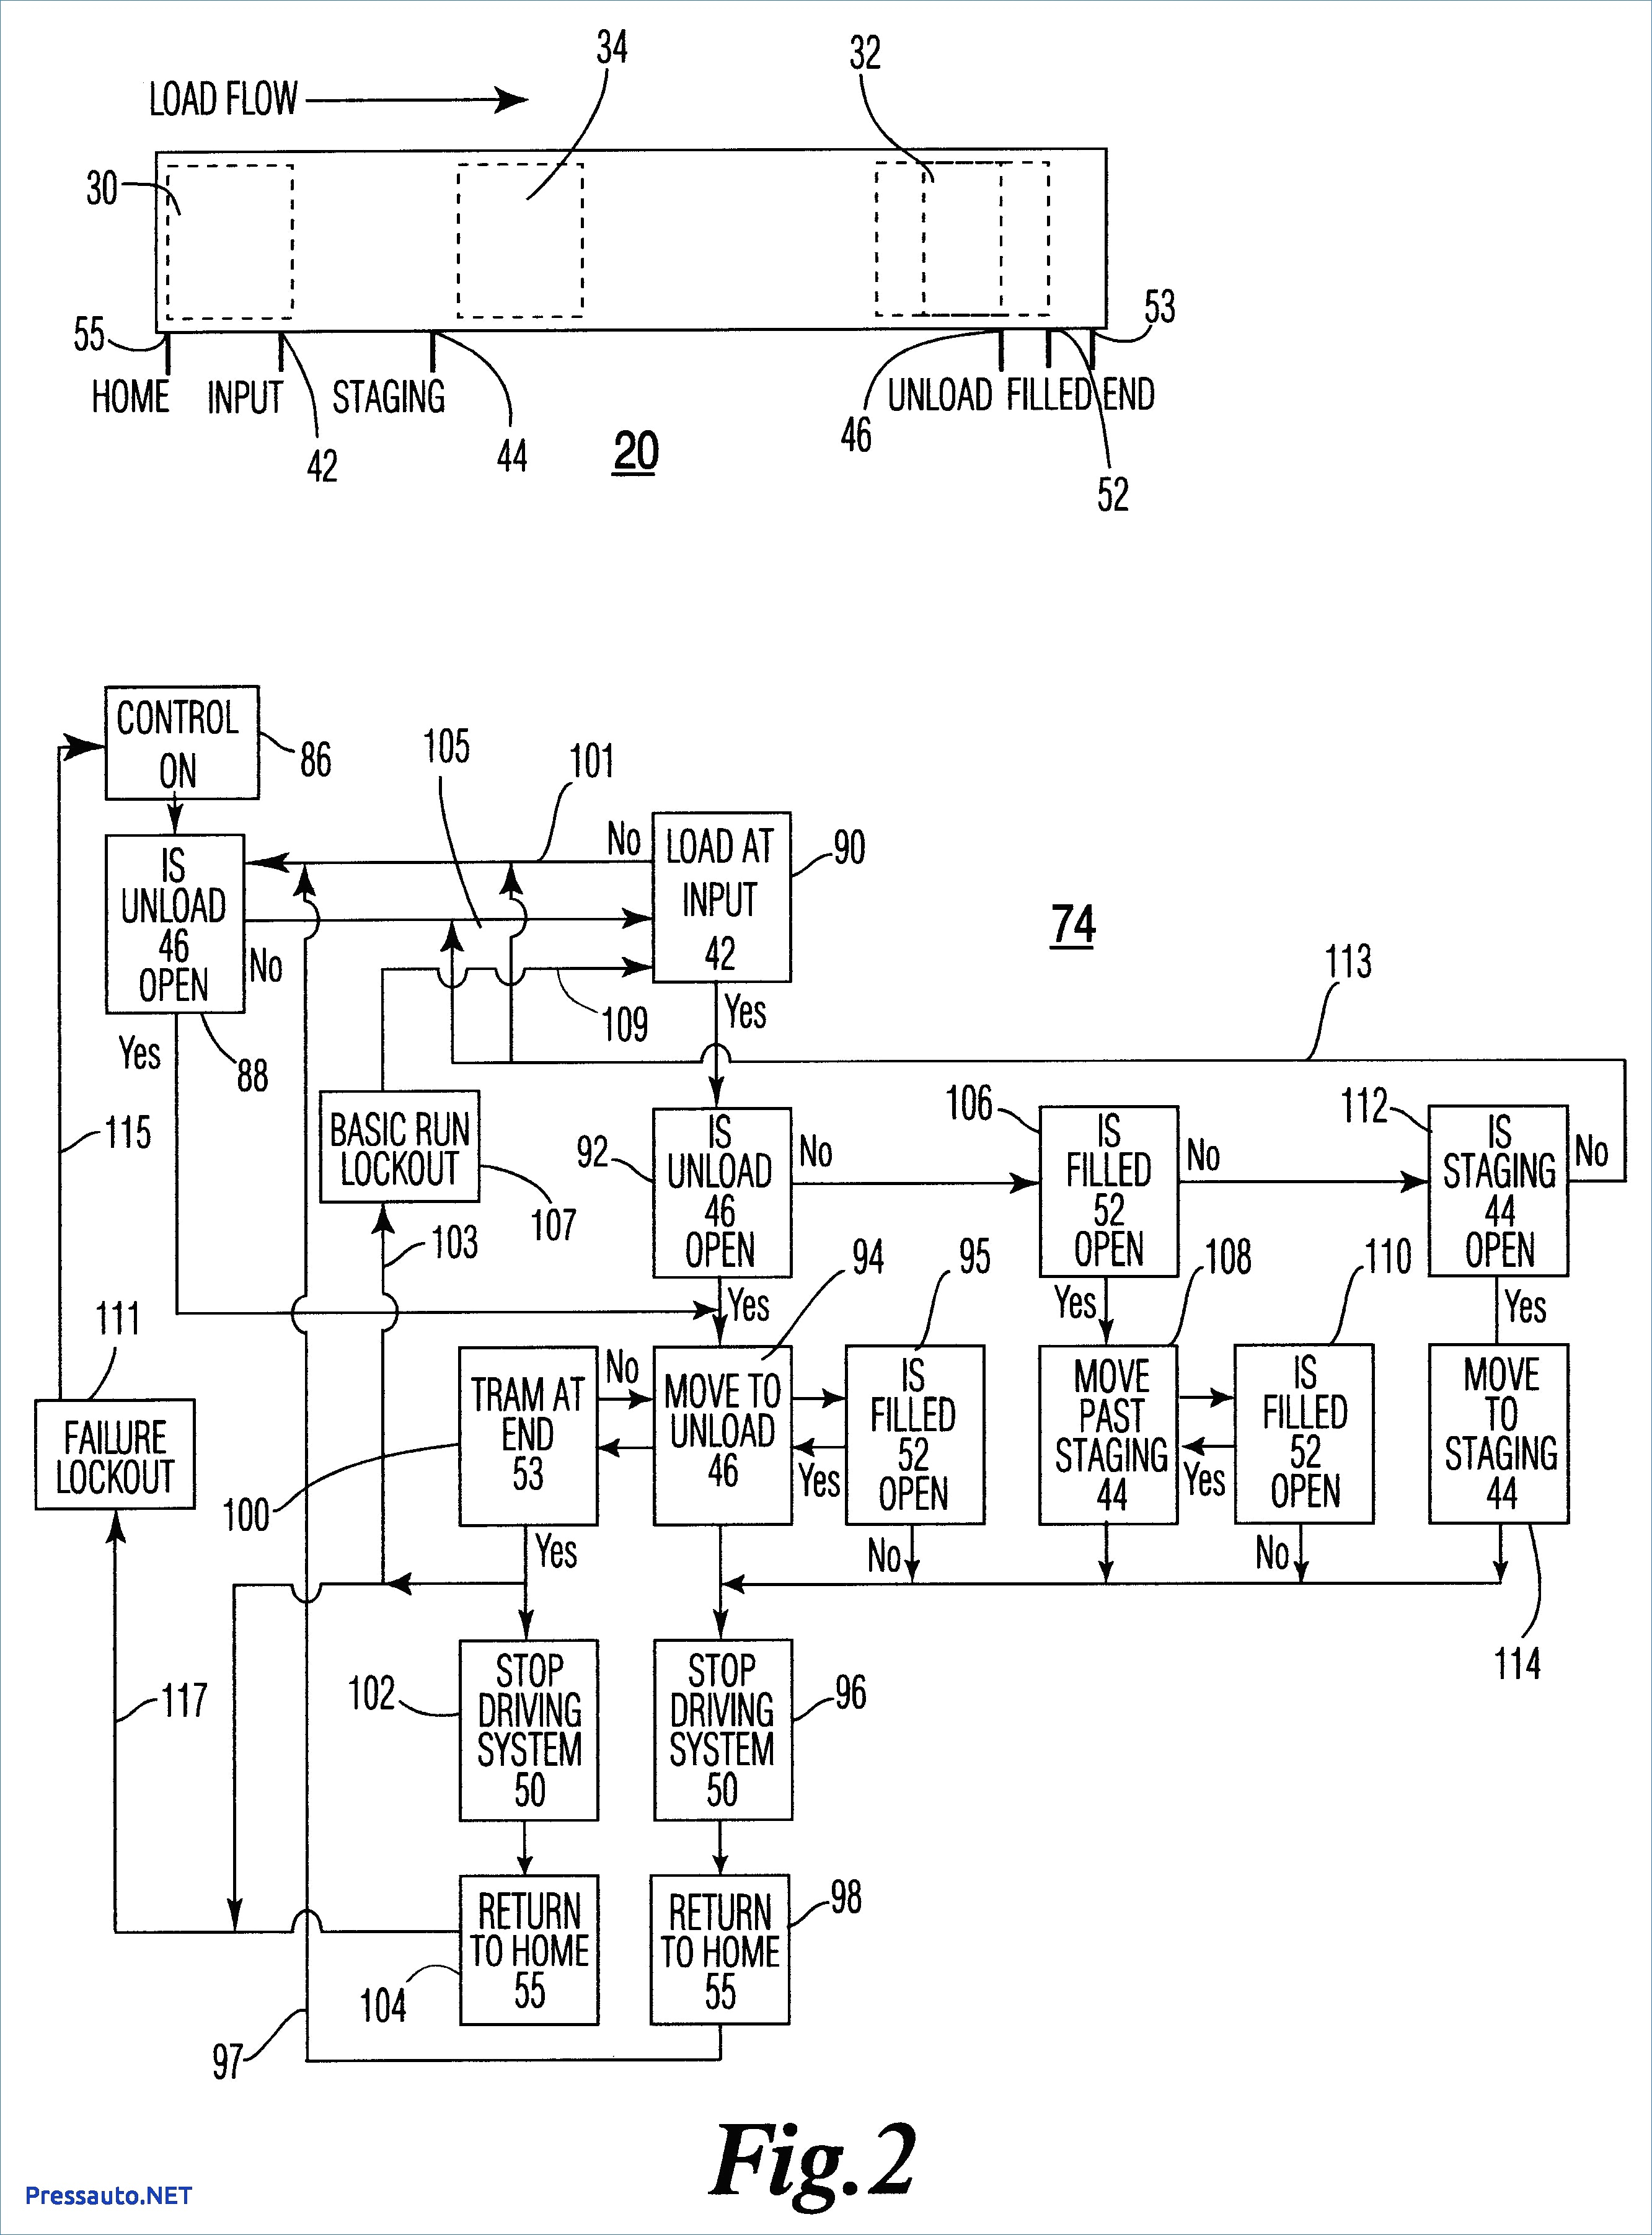 buck and boost transformer wiring diagram download